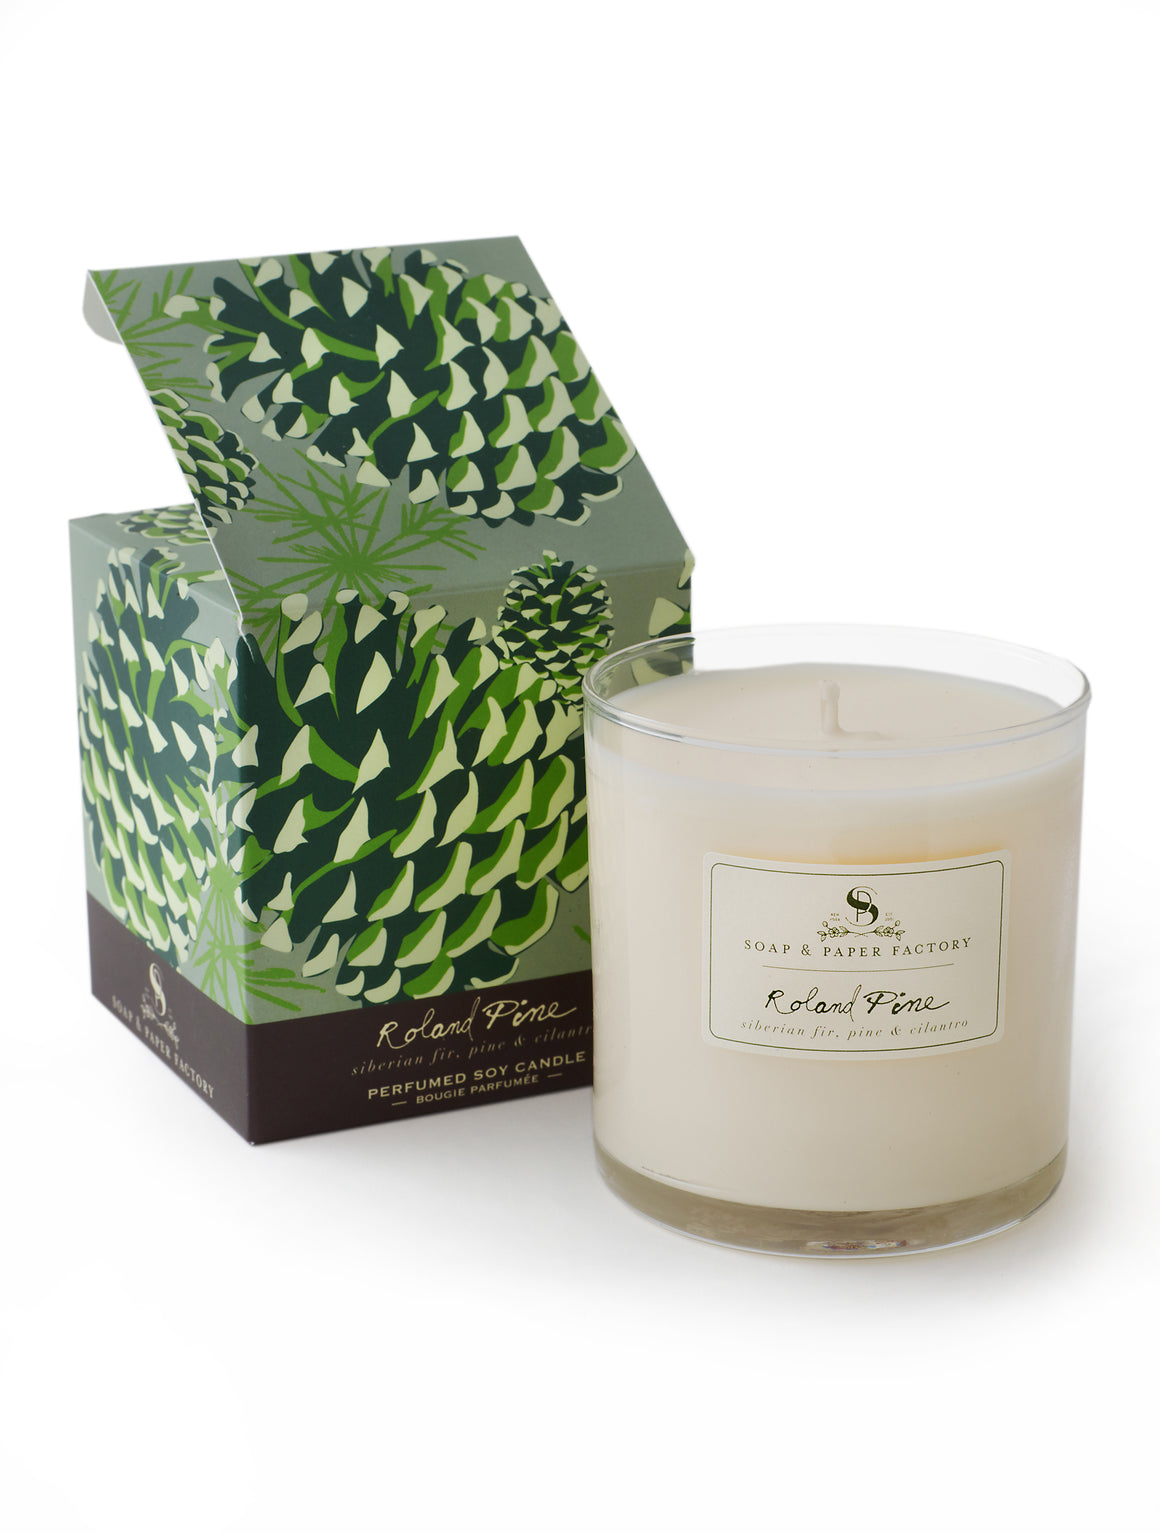 Roland Pine Large Soy Candle - Sullivan Street Tea & Spice Company